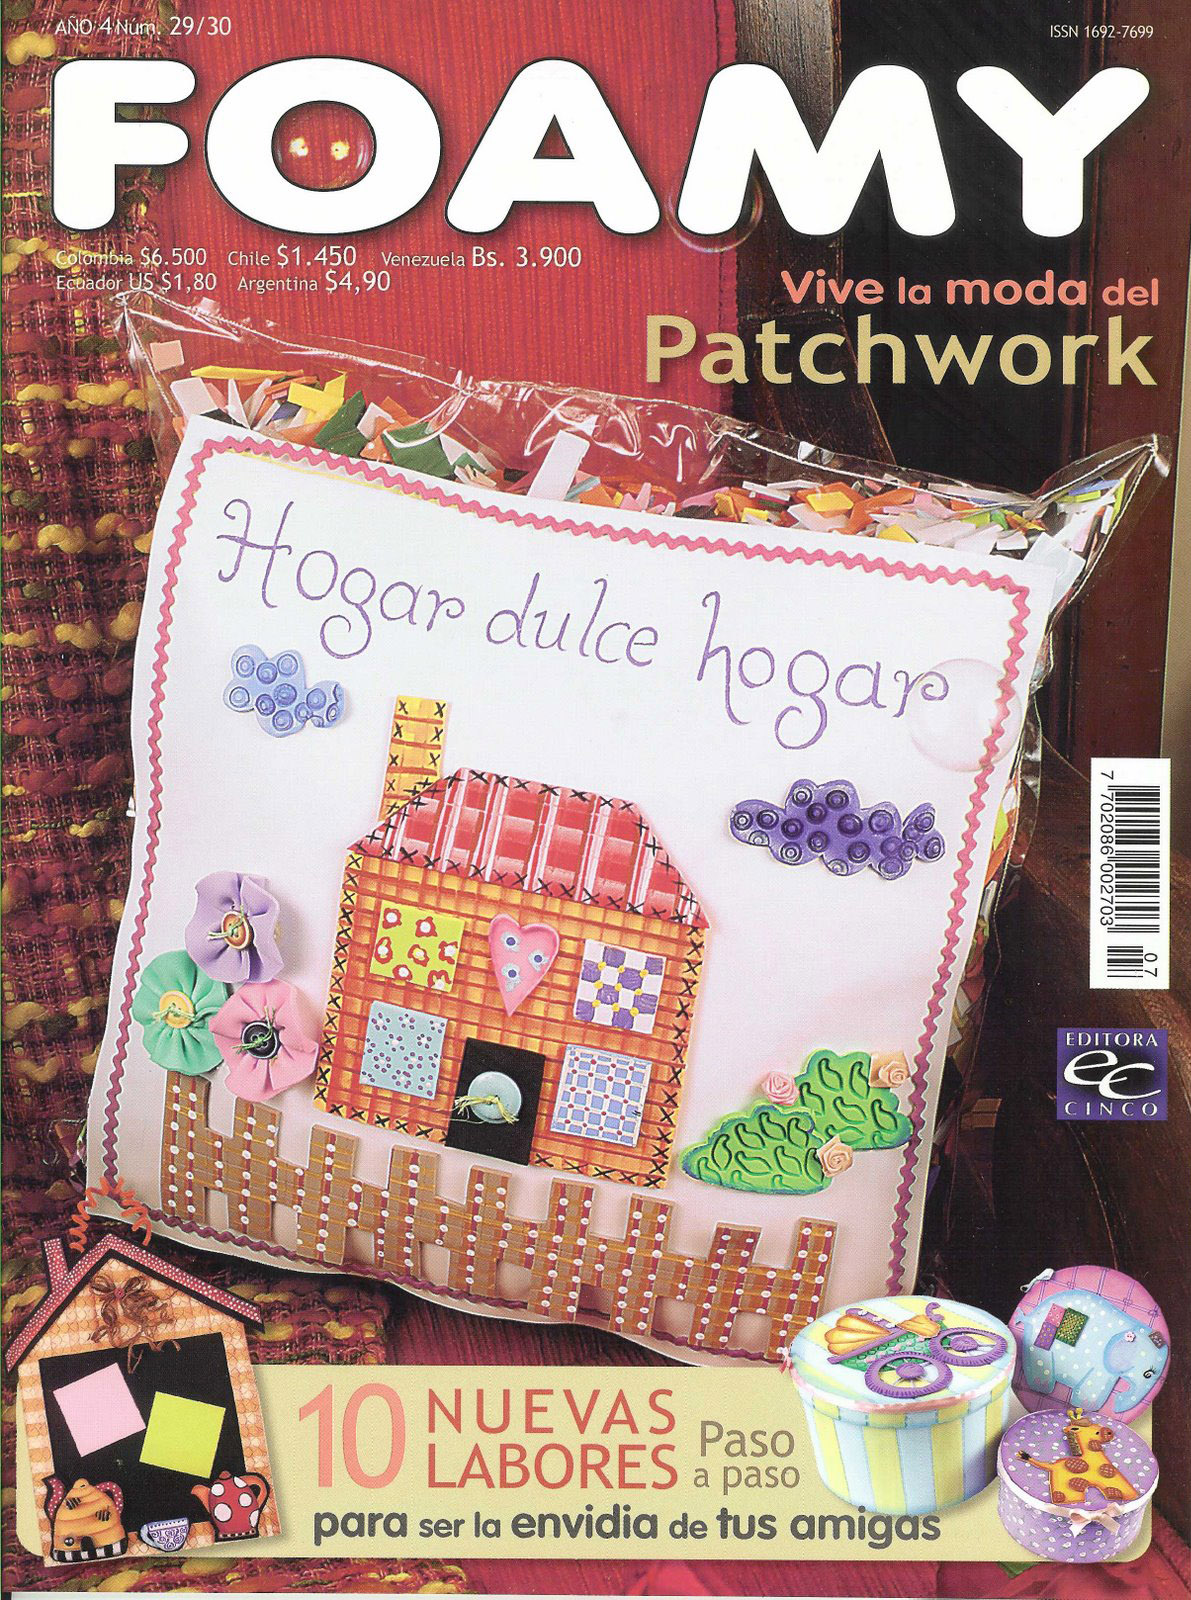 Labores Del Hogar Patchwork Foamy Nro 29 Patchwork Librosvirtual